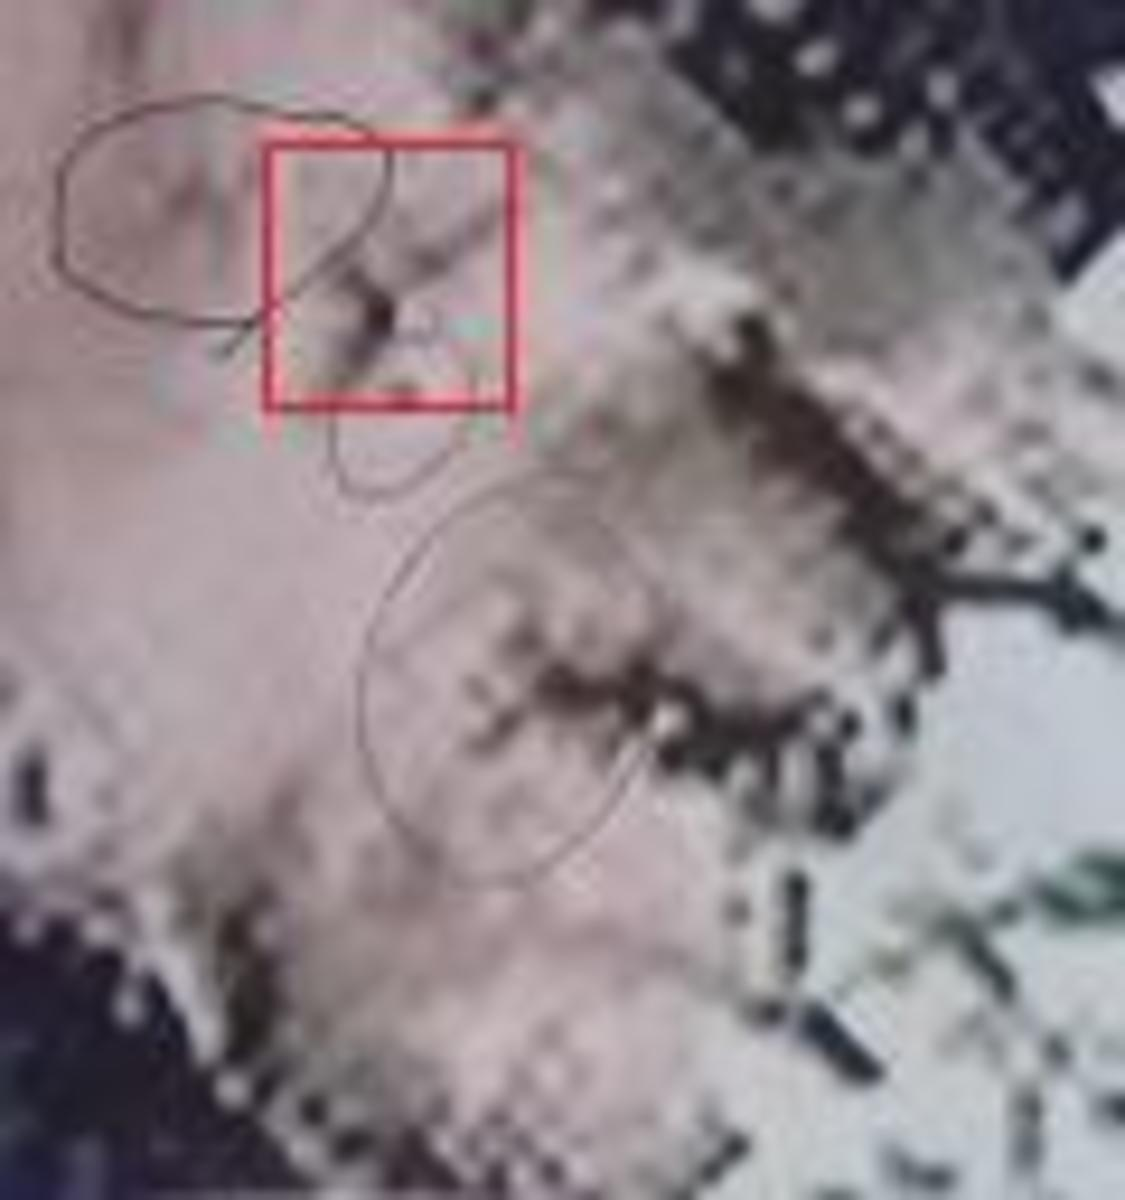 The 'MOST WANTED ENHANCED PHOTOGRAPH' left out another scar--the 4th one that matches the photograph w/President Allende.